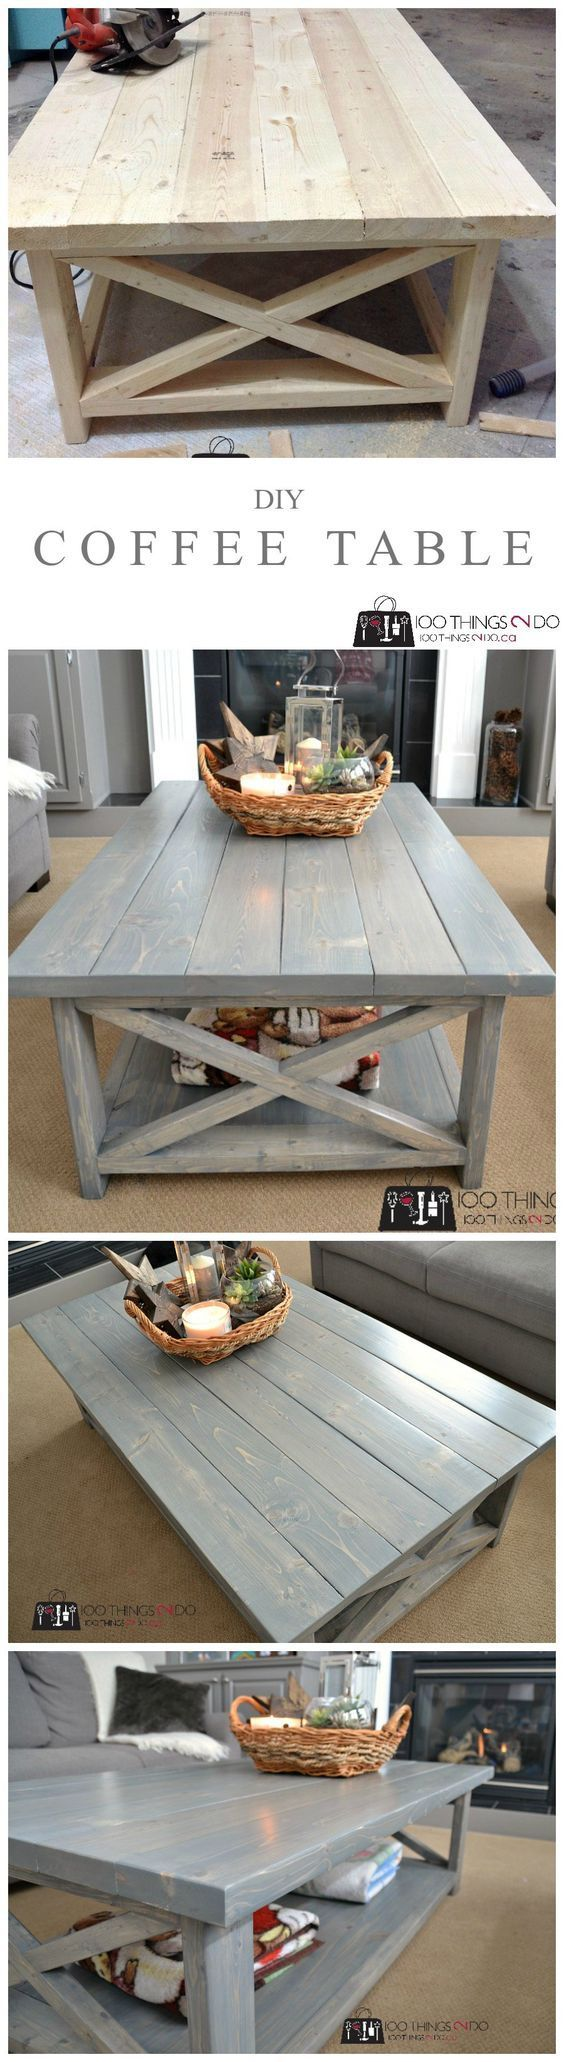 Best 25+ Coffee tables ideas on Pinterest | Coffe table, Wood ...